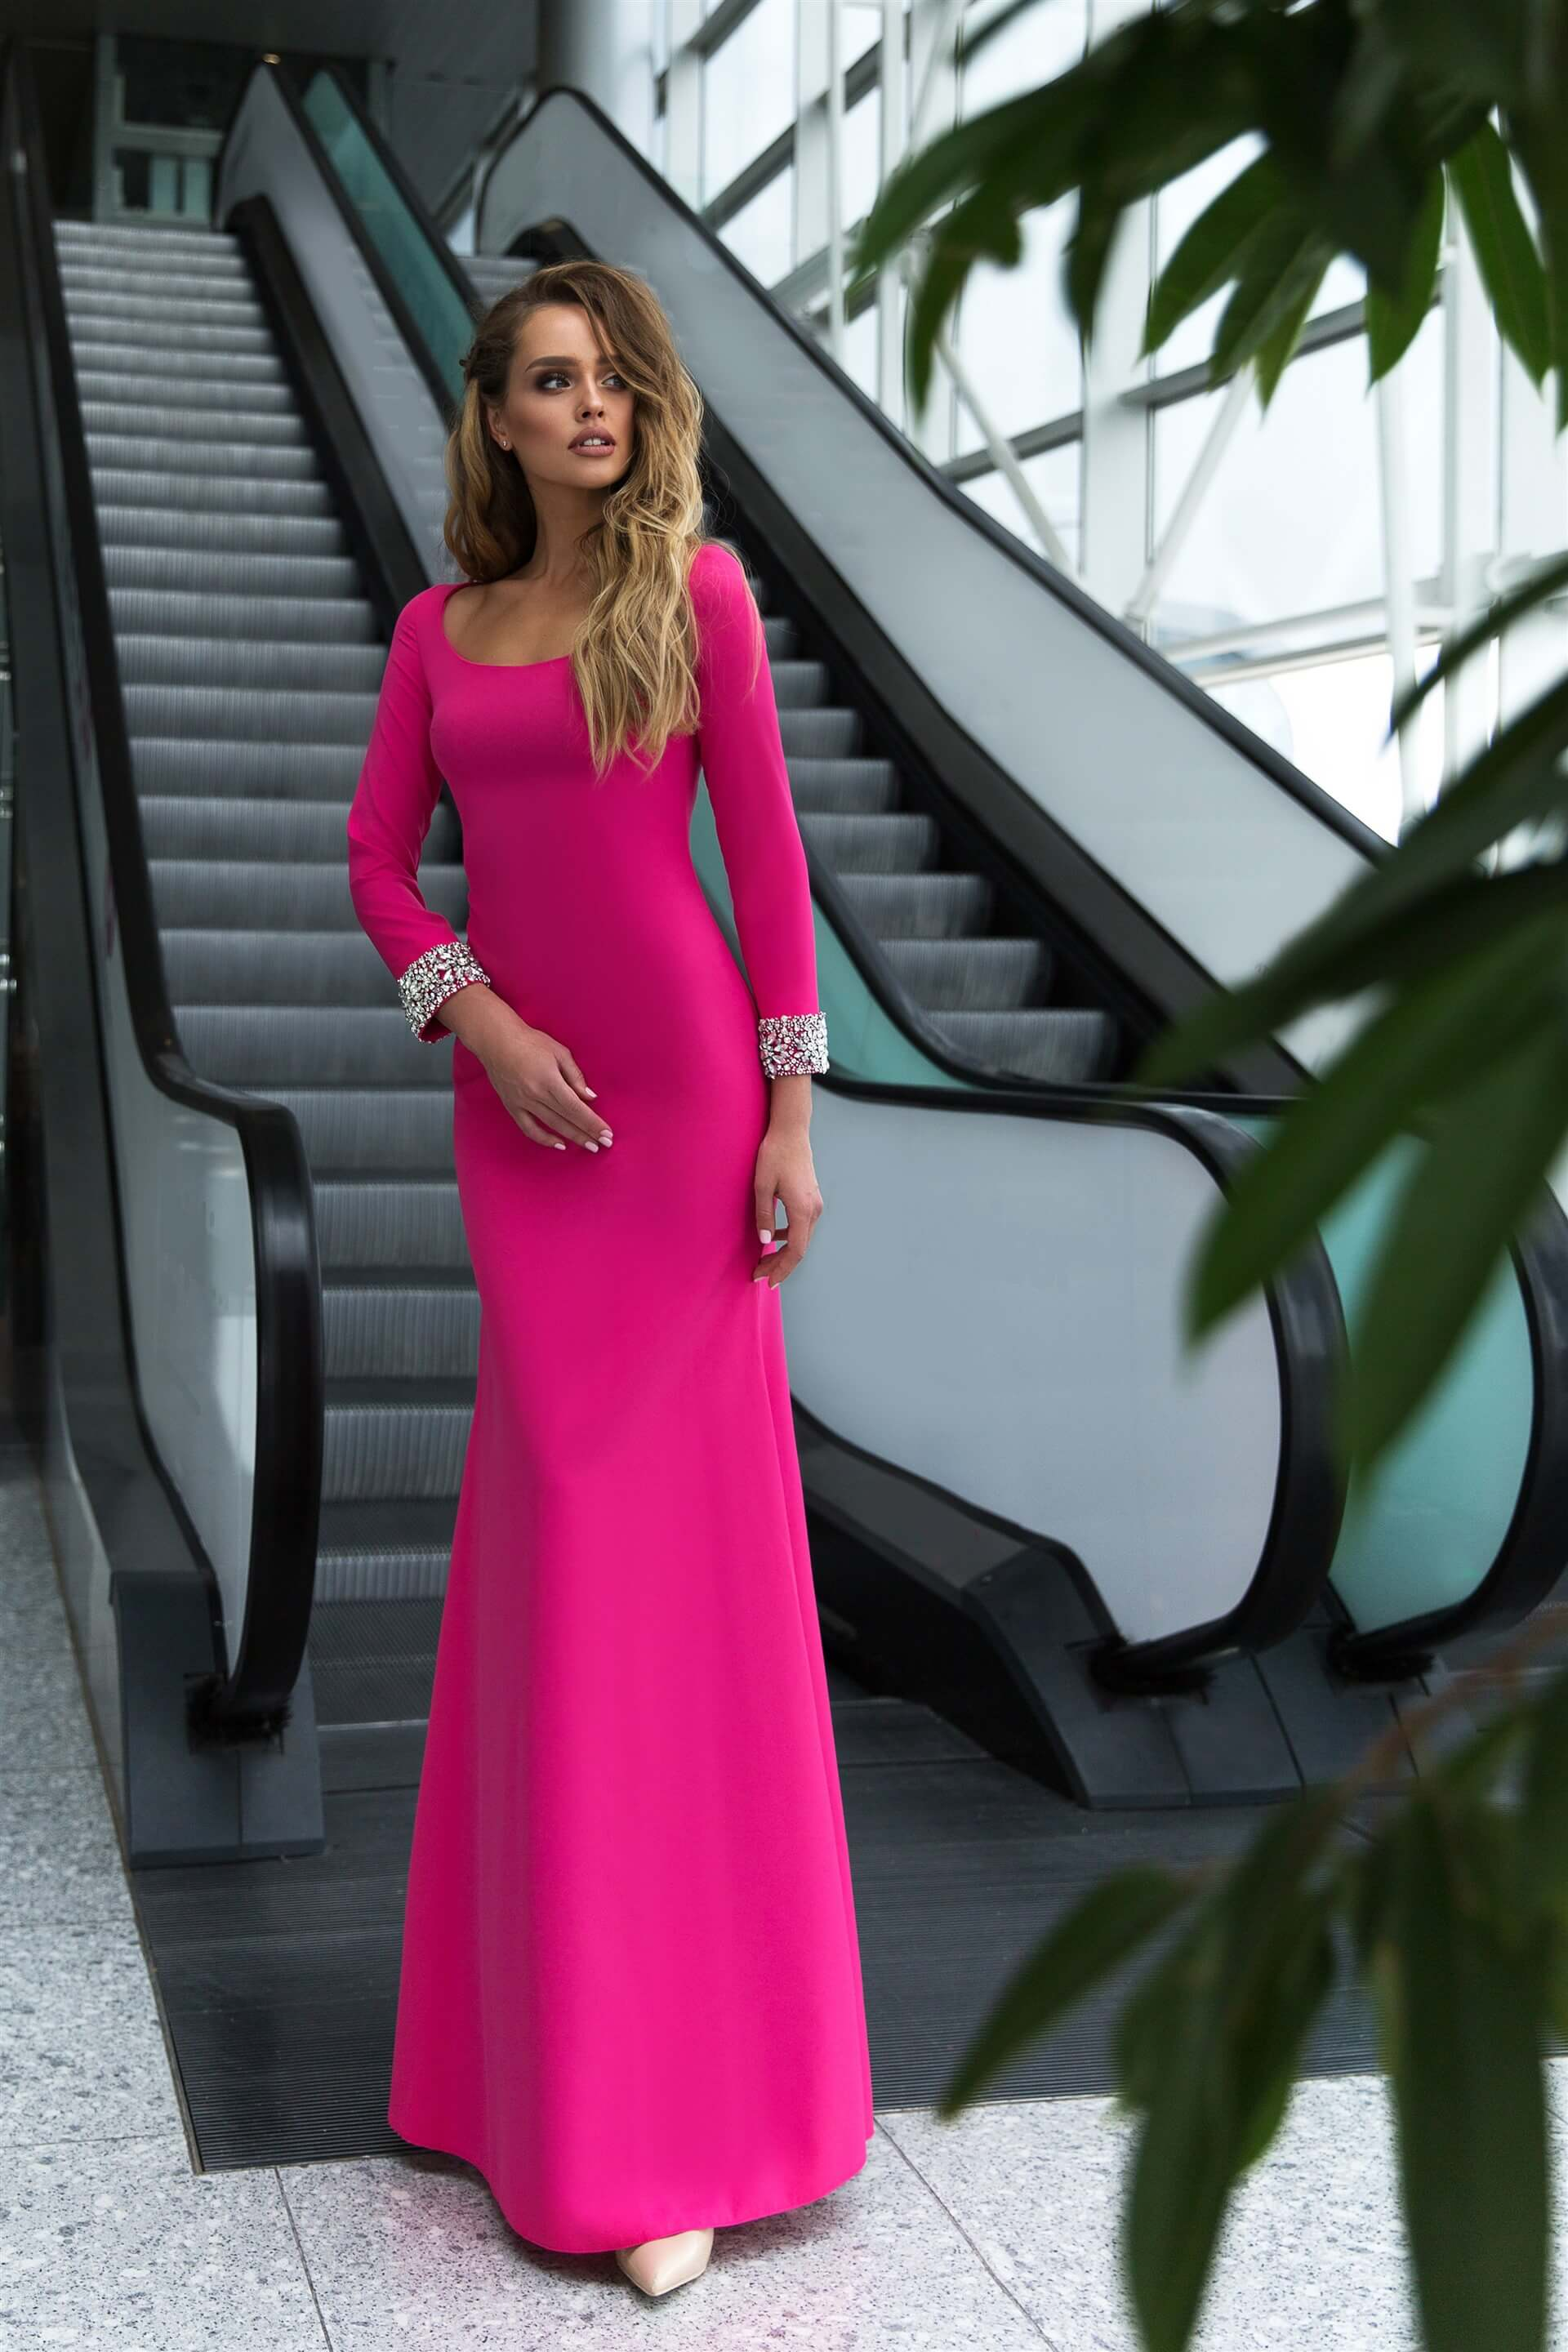 Evening dress Olivia buy, Evening dress Olivia